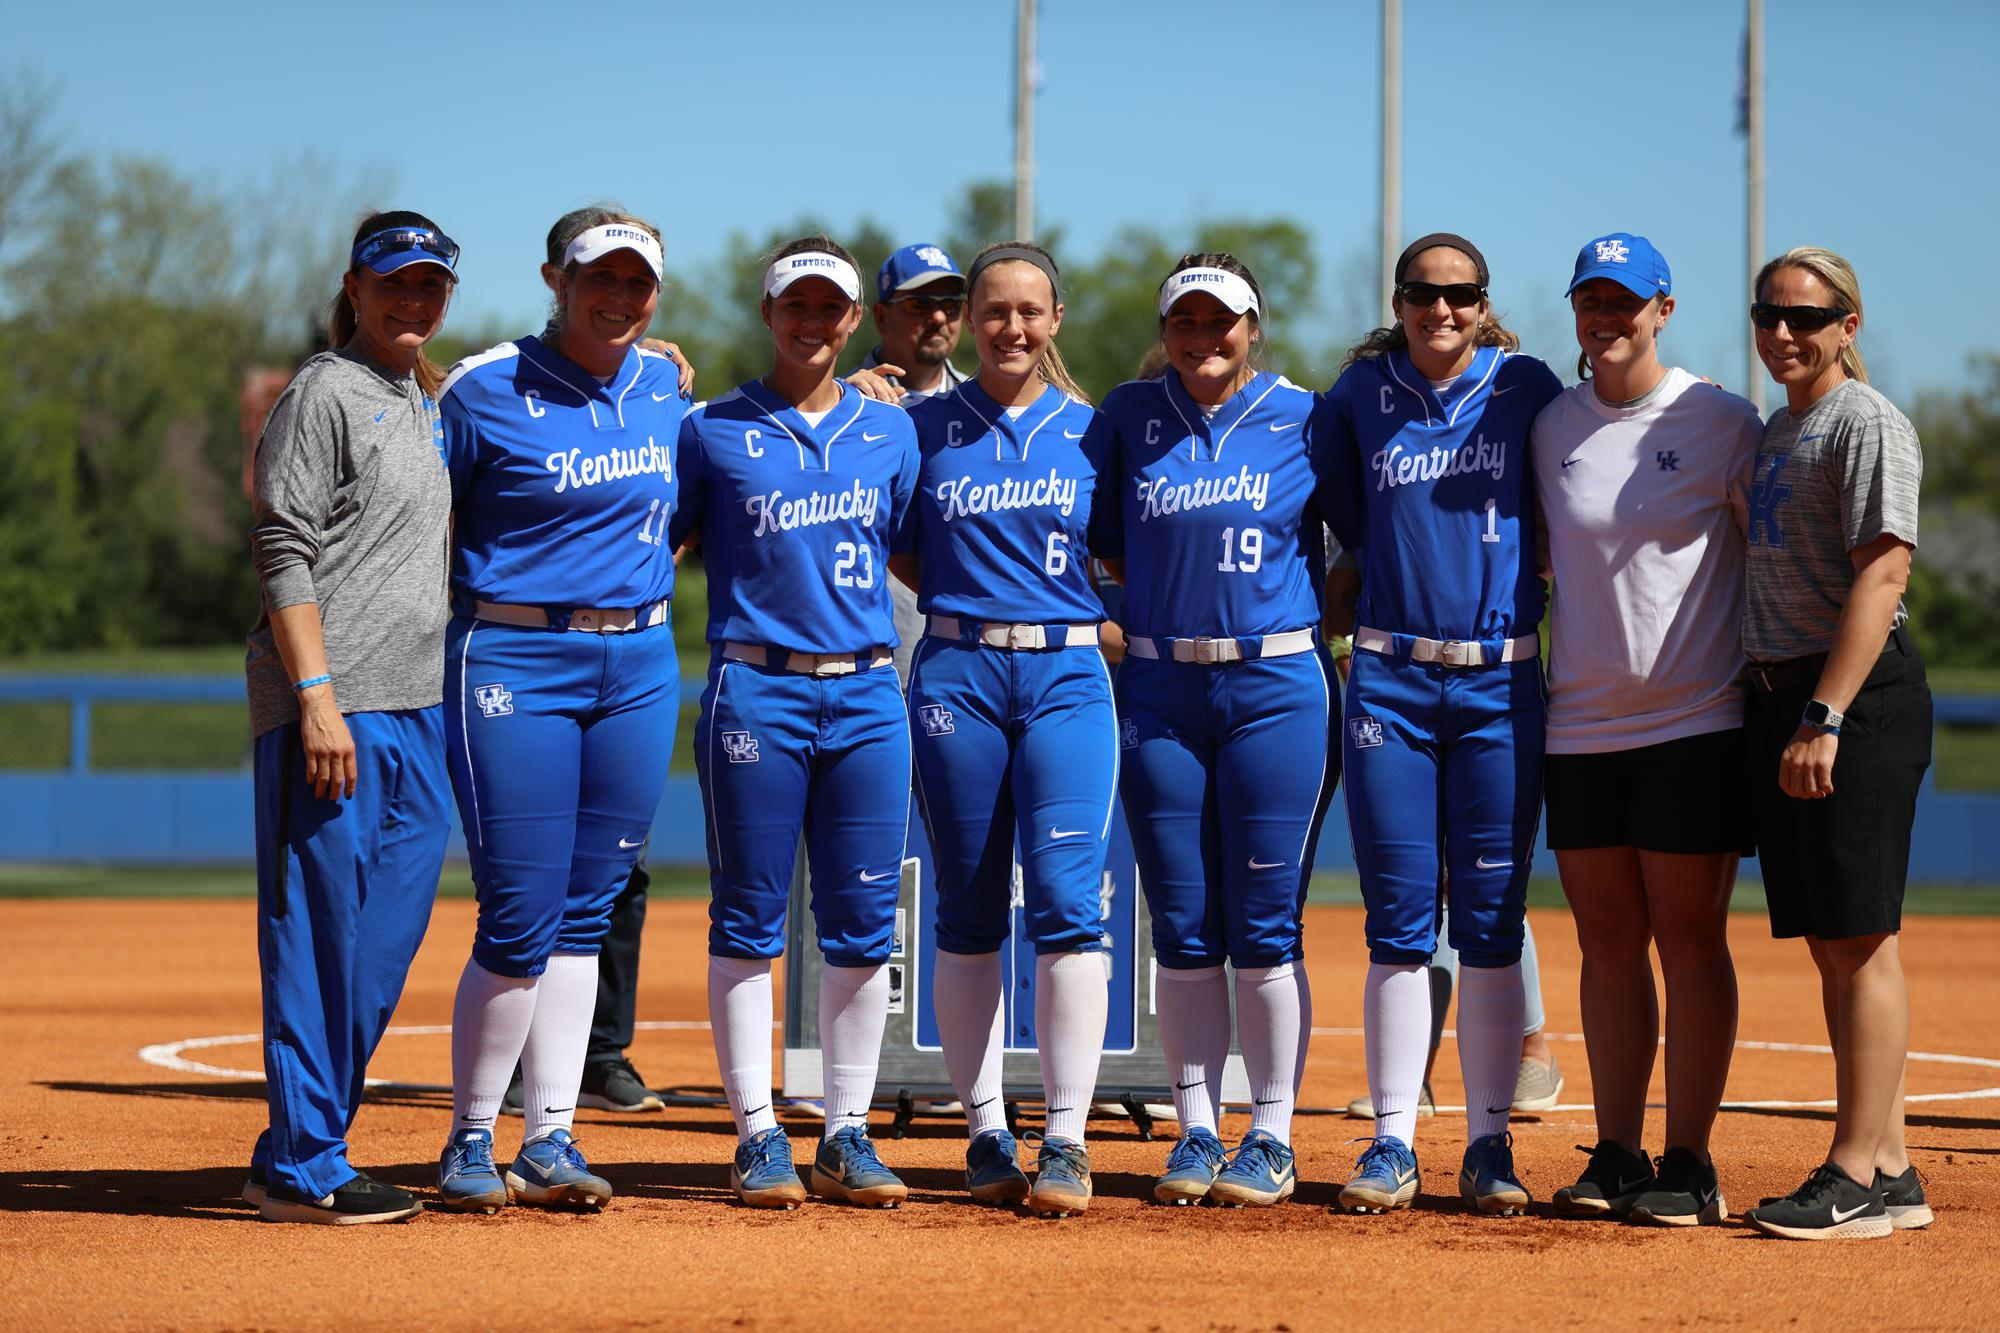 Some members of the softball team at UK